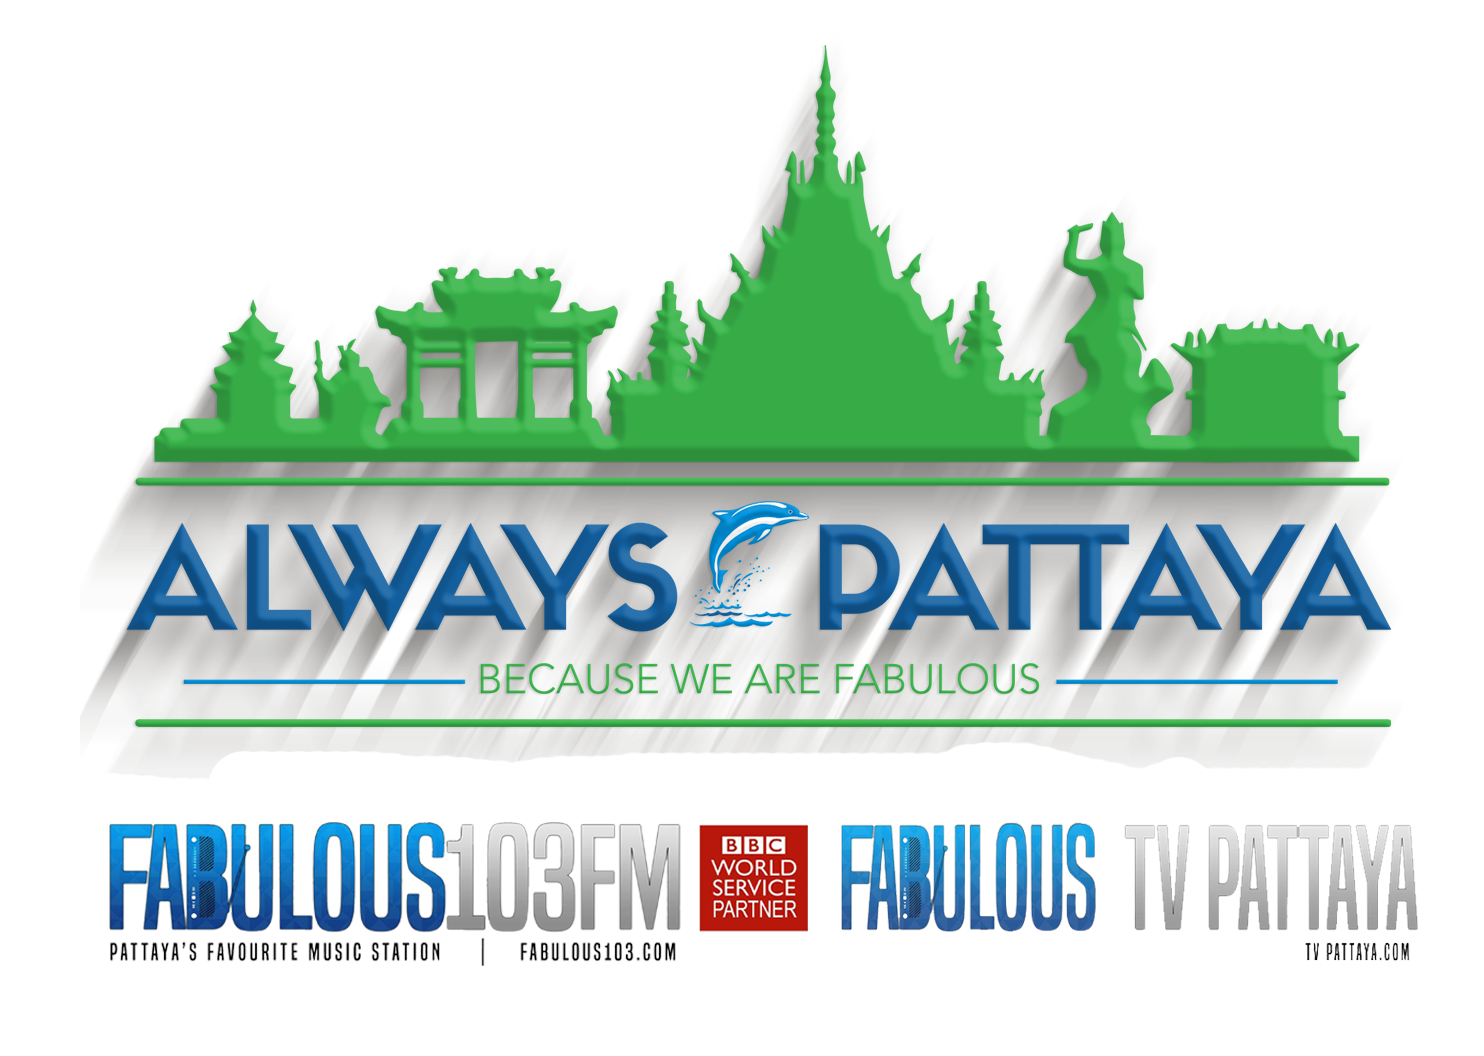 Always Pattaya….Fabulous